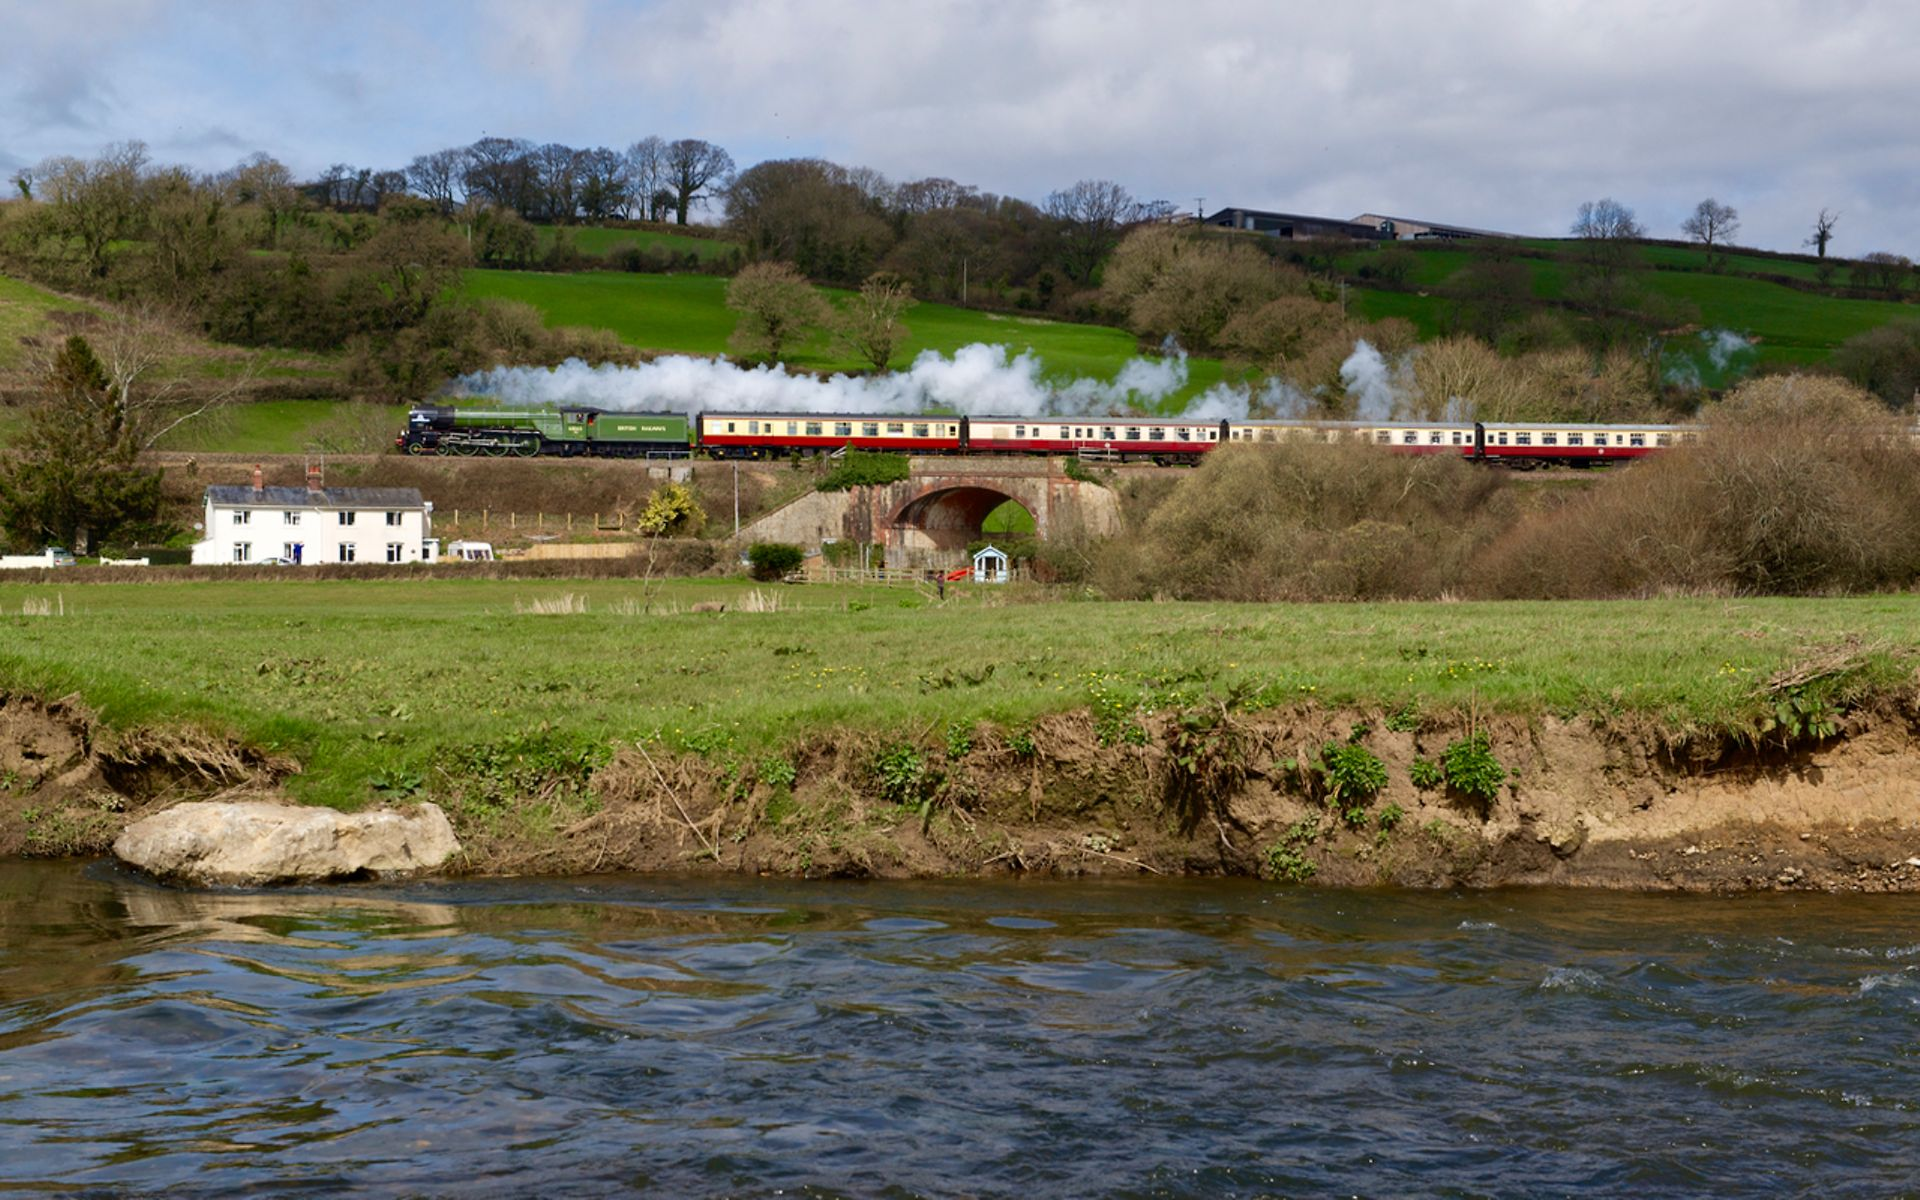 Steam service passes through the countryside